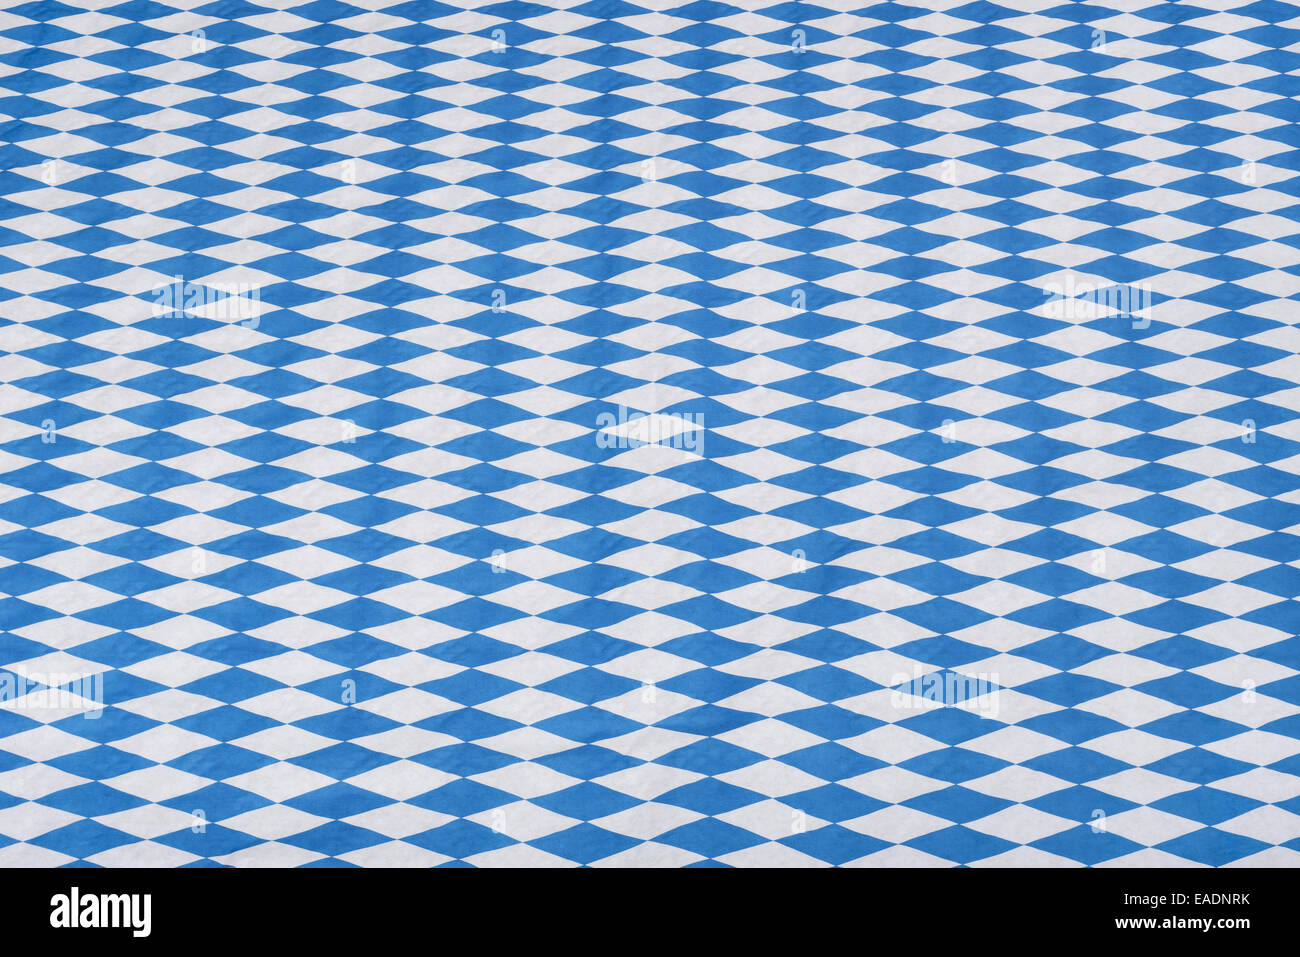 Blue tablecloth background - Stock Photo Typical Blue White Bavarian Munich Festival Oktoberfest Tablecloth Background